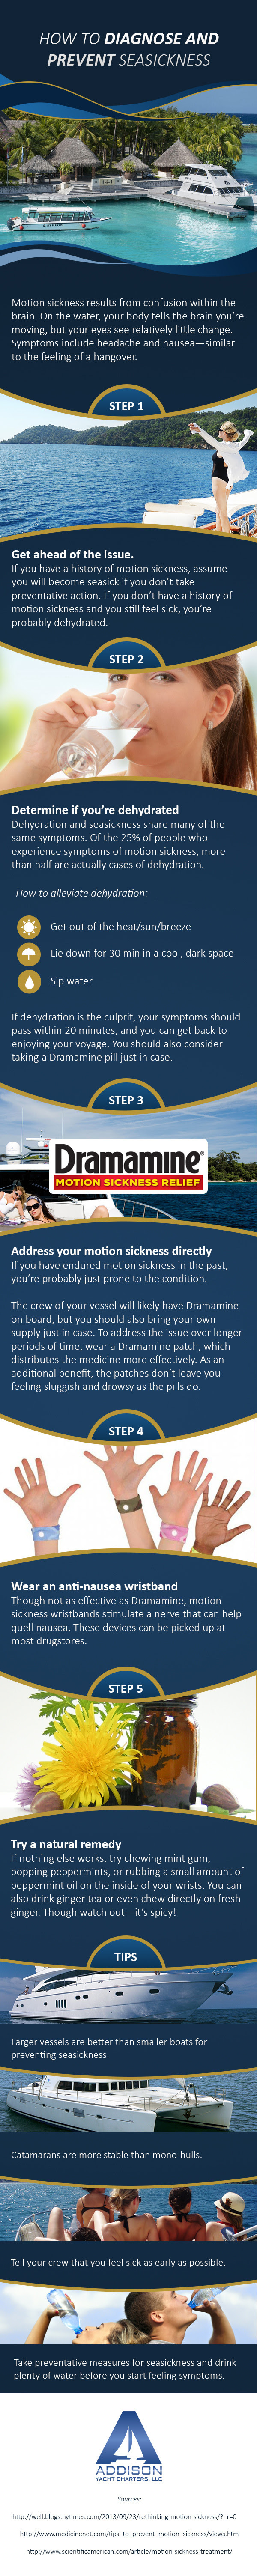 How to Diagnose and Prevent Seasickness